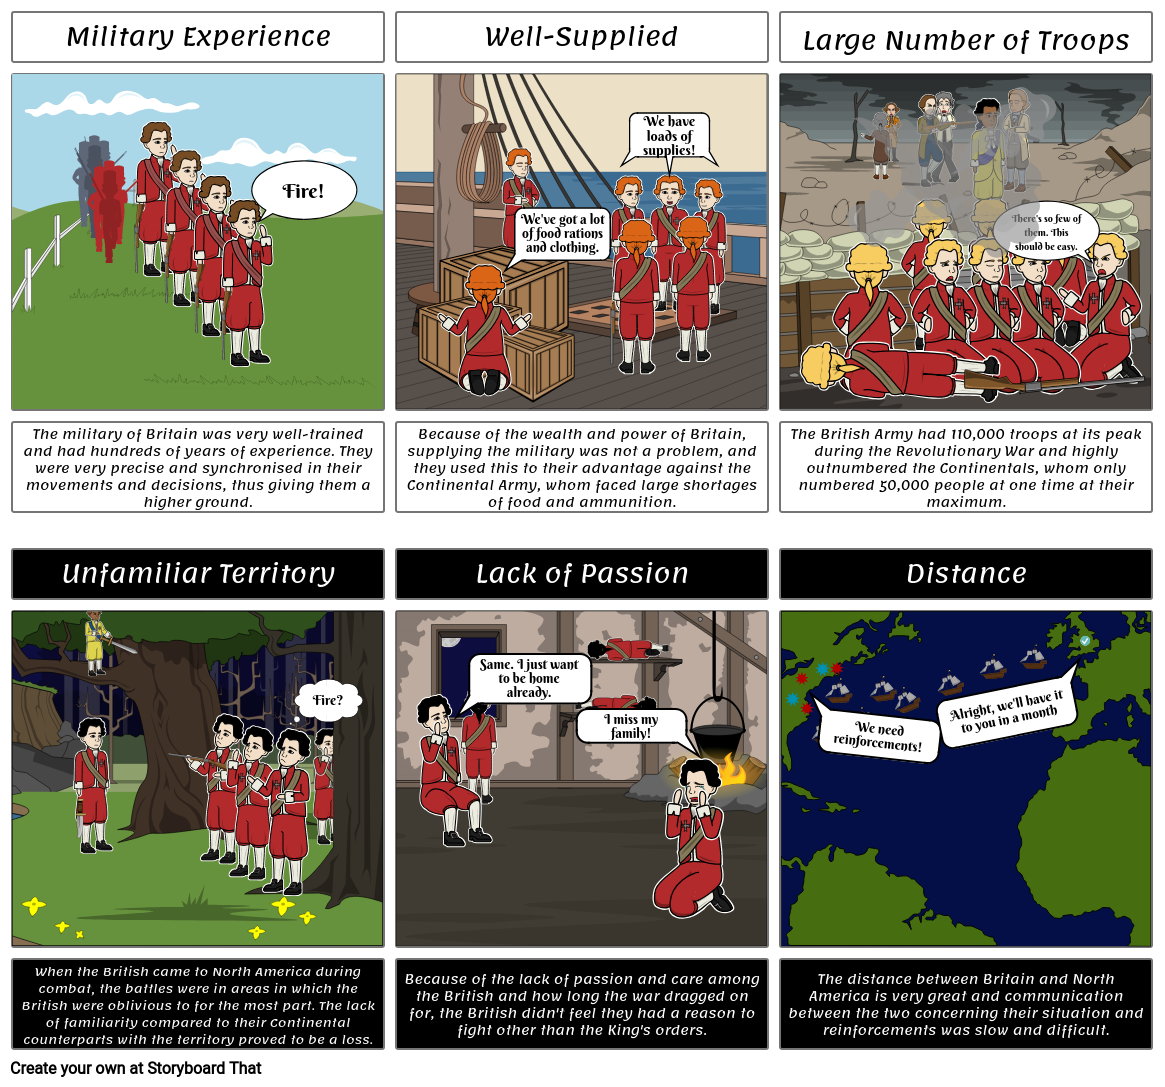 Advantages and Disadvantages of the British Army